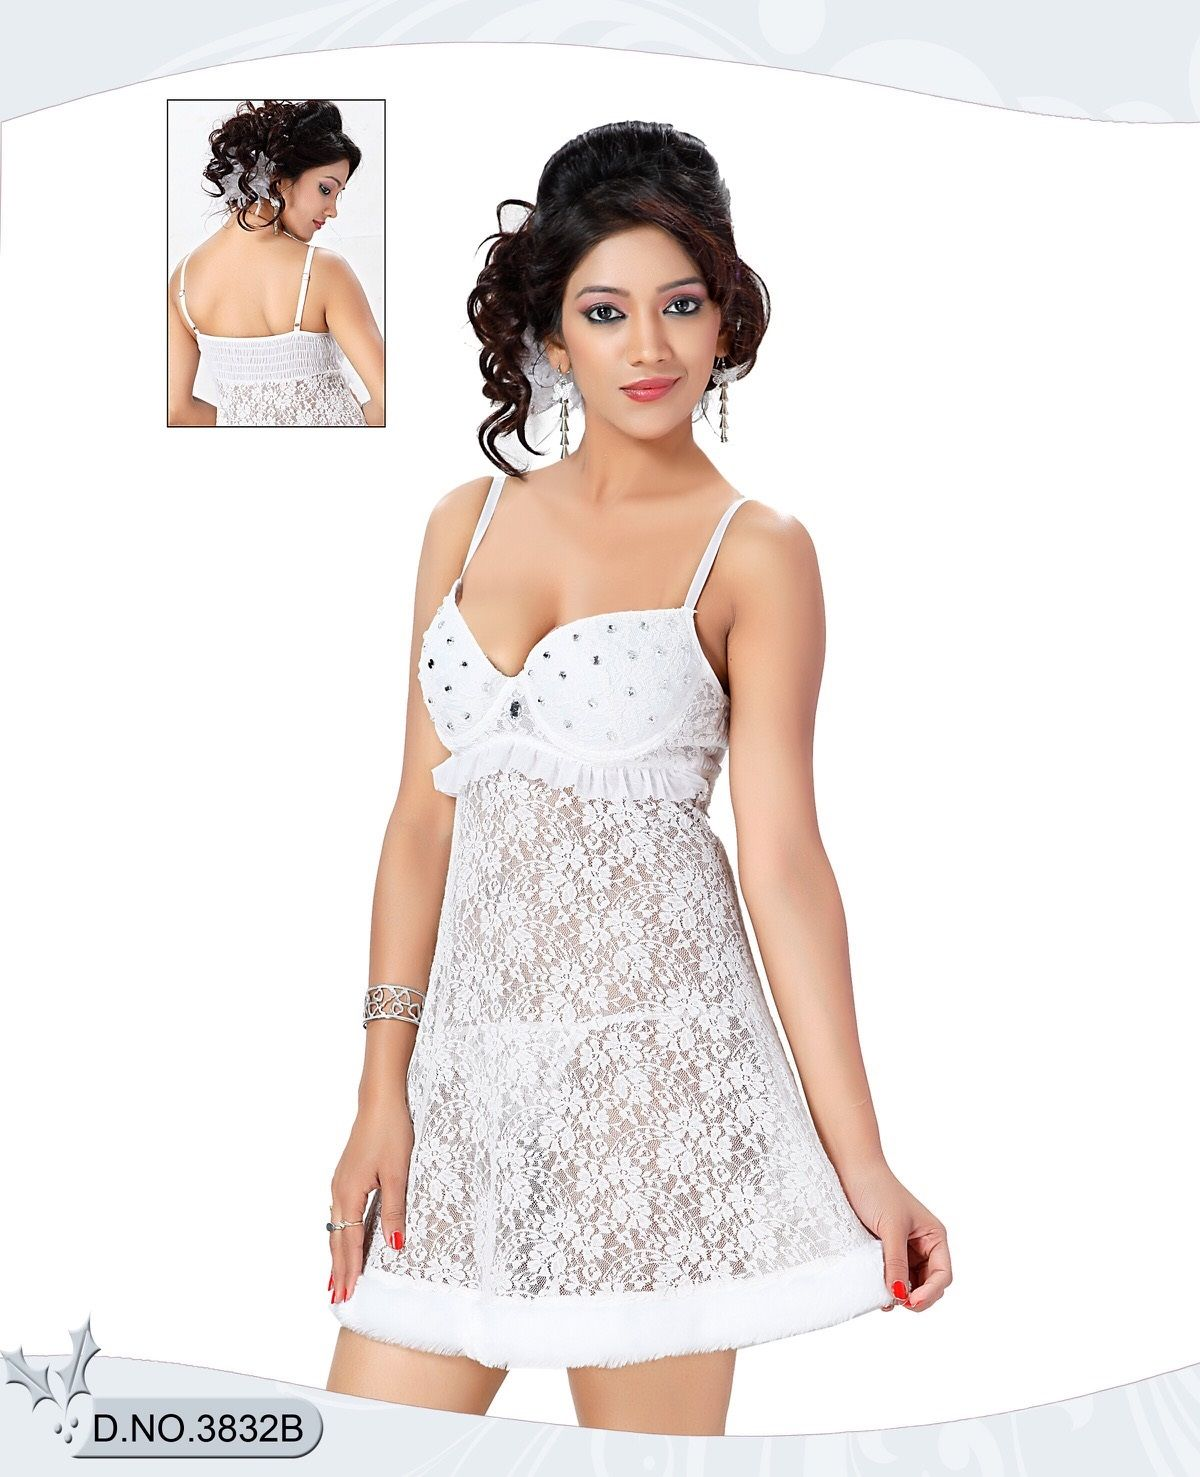 010fc1dcb New Hot Sexy Women Ladies Girls Lace Robe Sleepwear Lingerie Gift G-string  Dress Nightdress